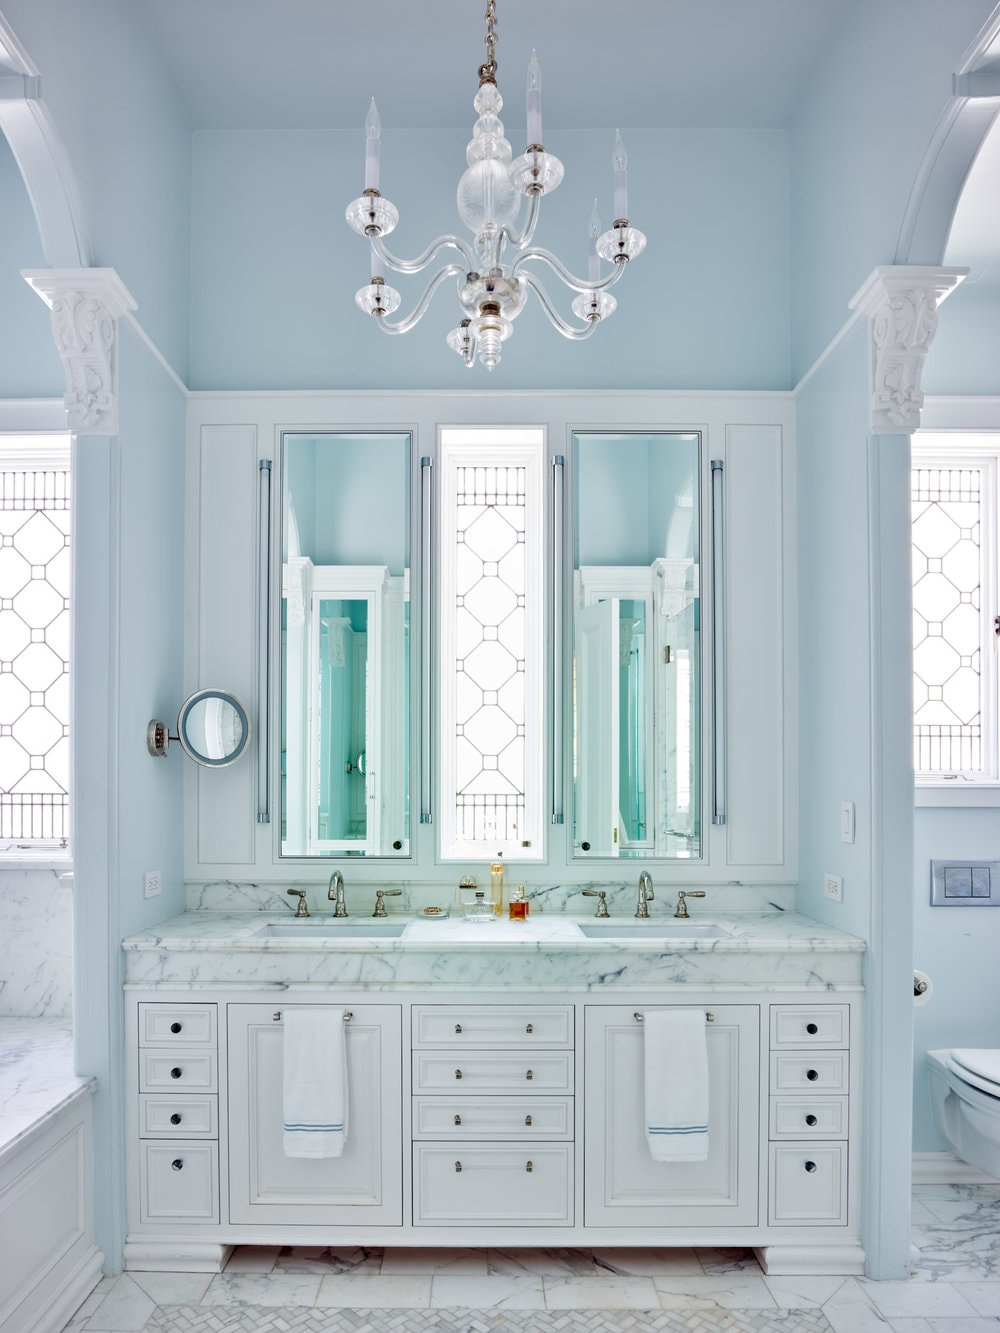 master batrhroom vanity with stained glass windows